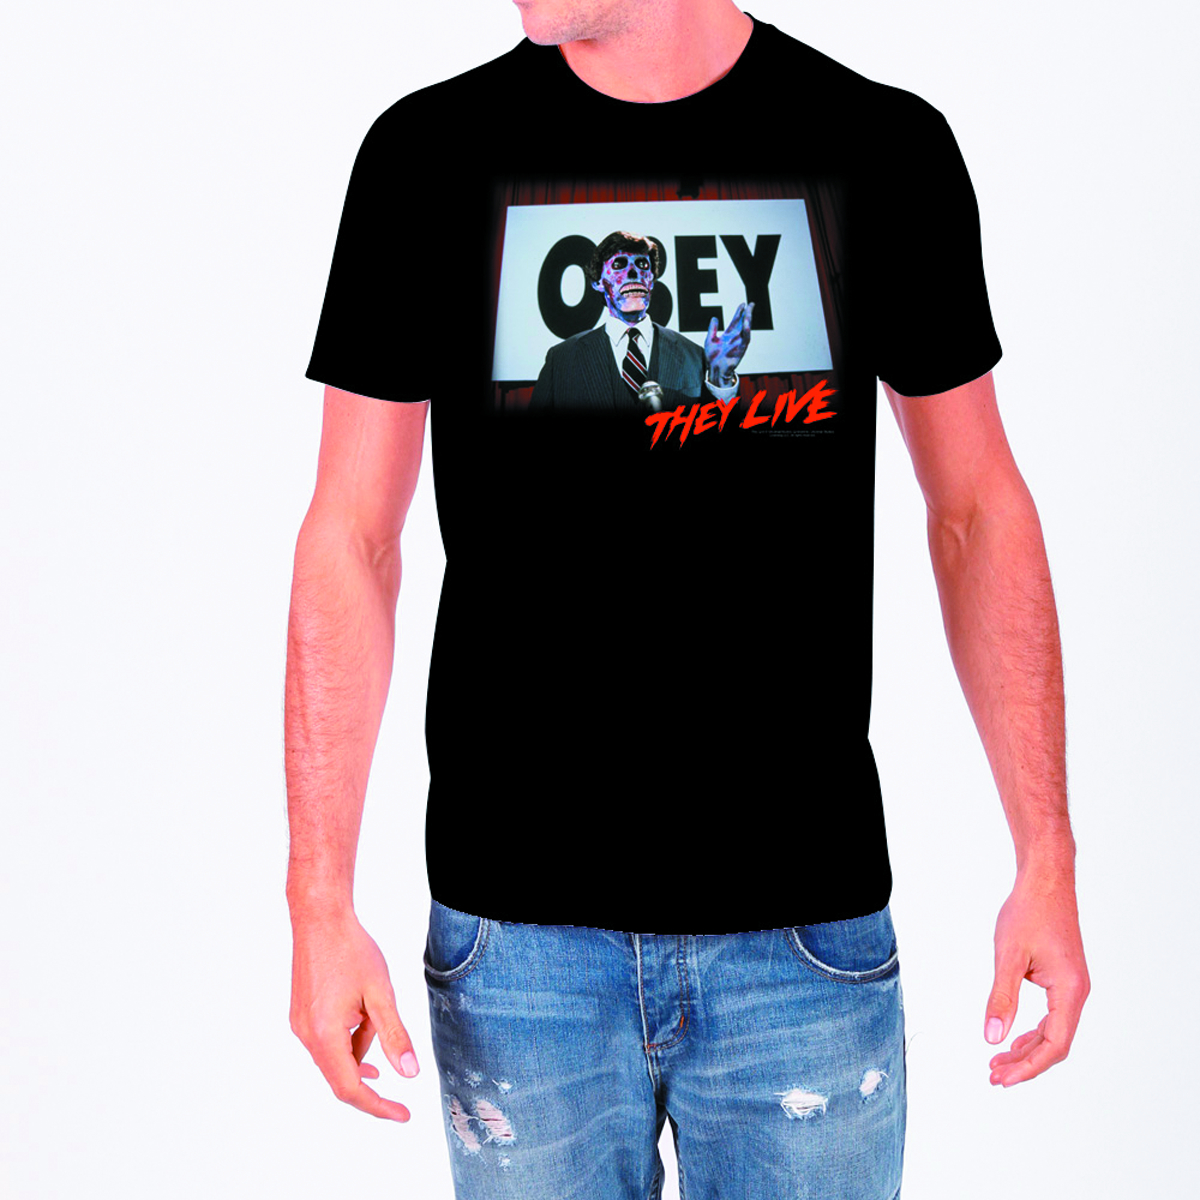 THEY LIVE OBEY BLK T/S LG